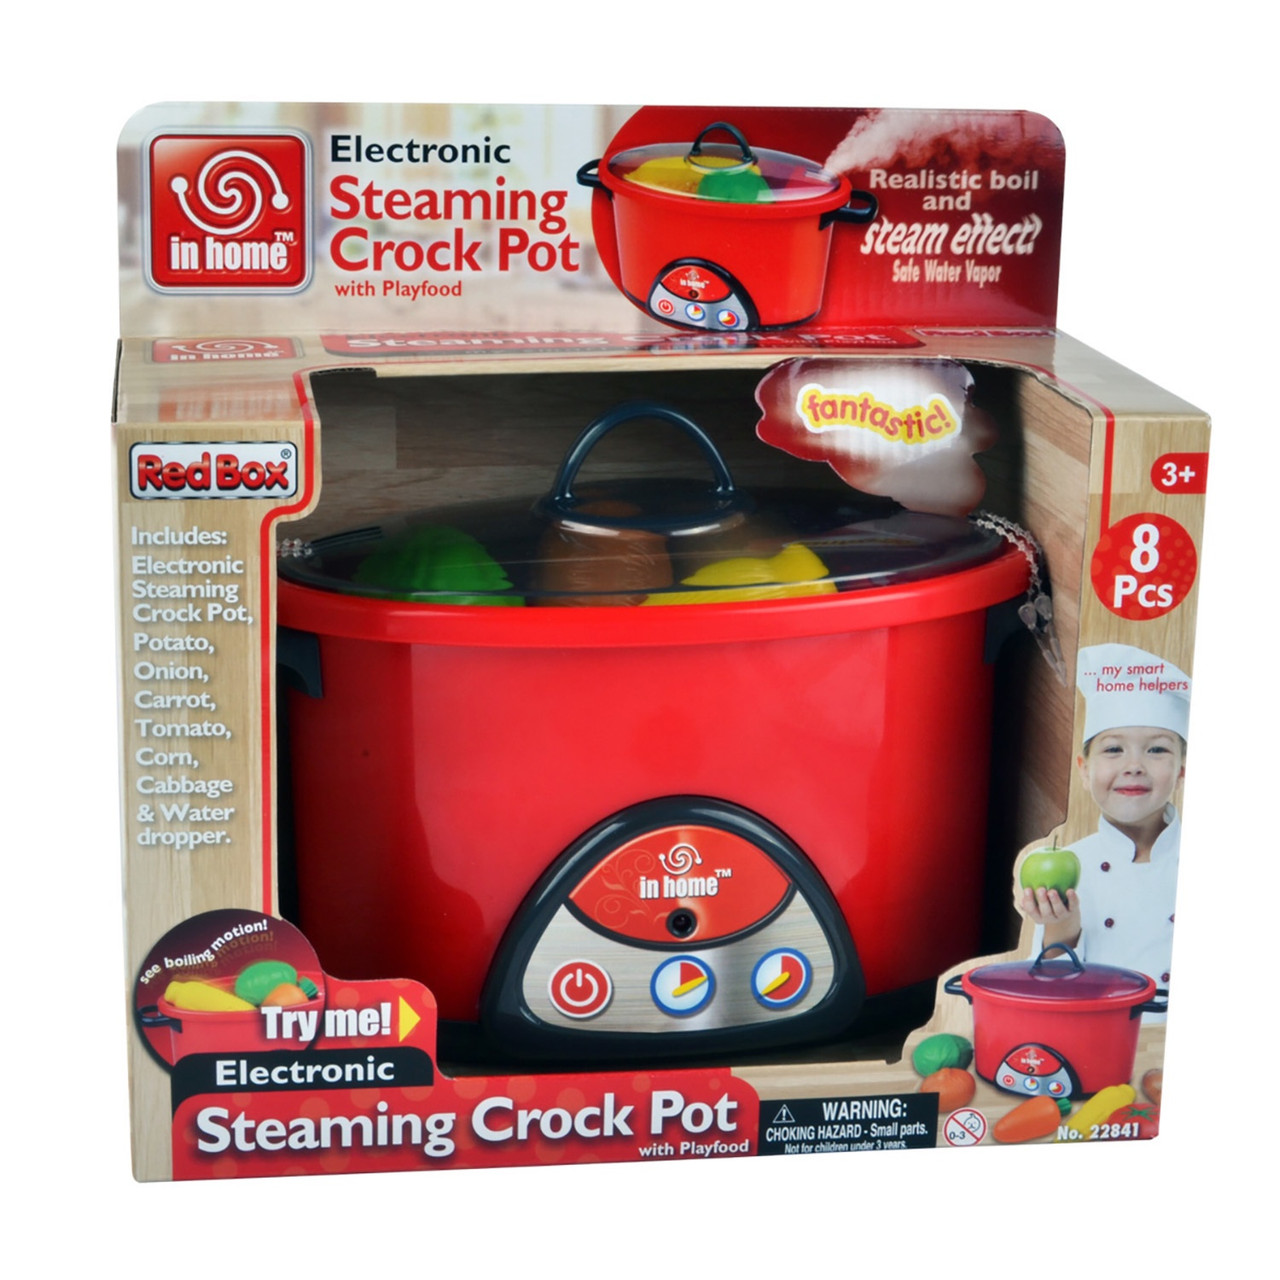 ELECTRONIC STEAMING CROCK POT WITH PLAYFOOD